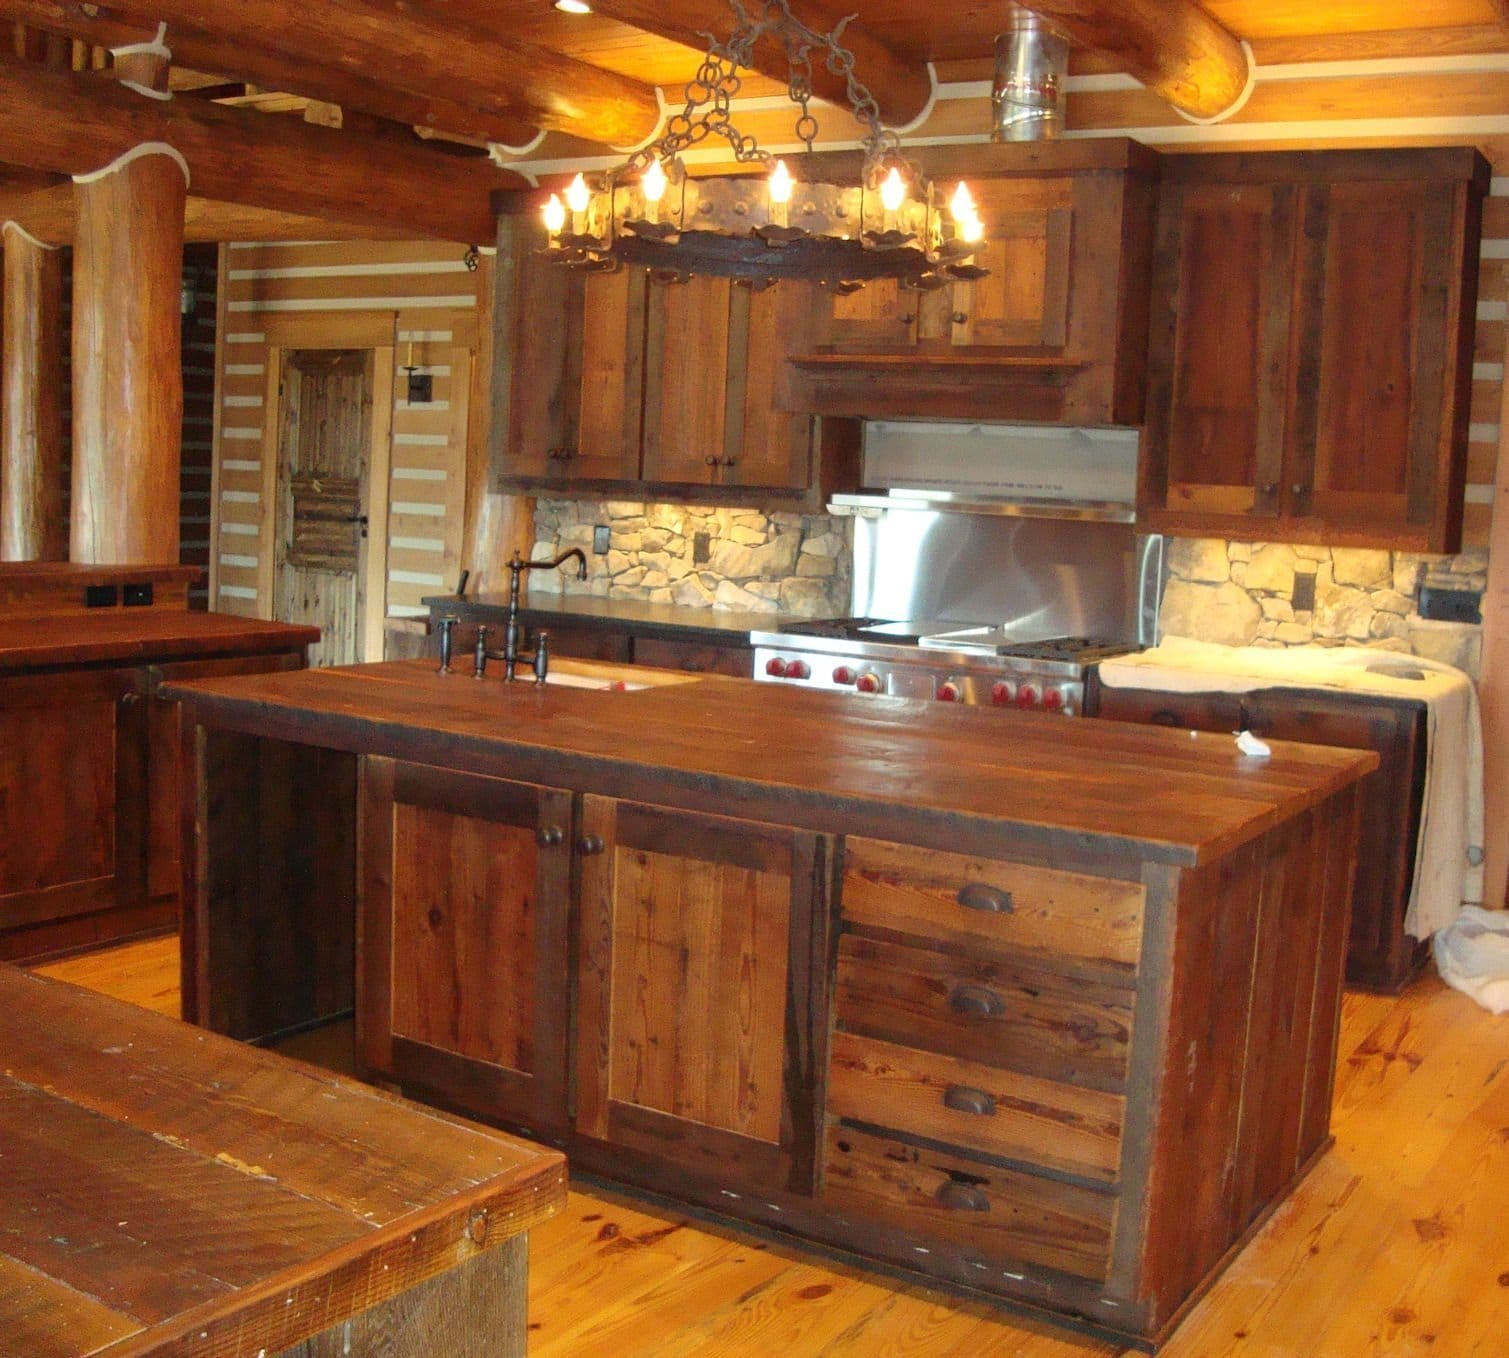 littlebranch farm handcrafted natural wood furniture by